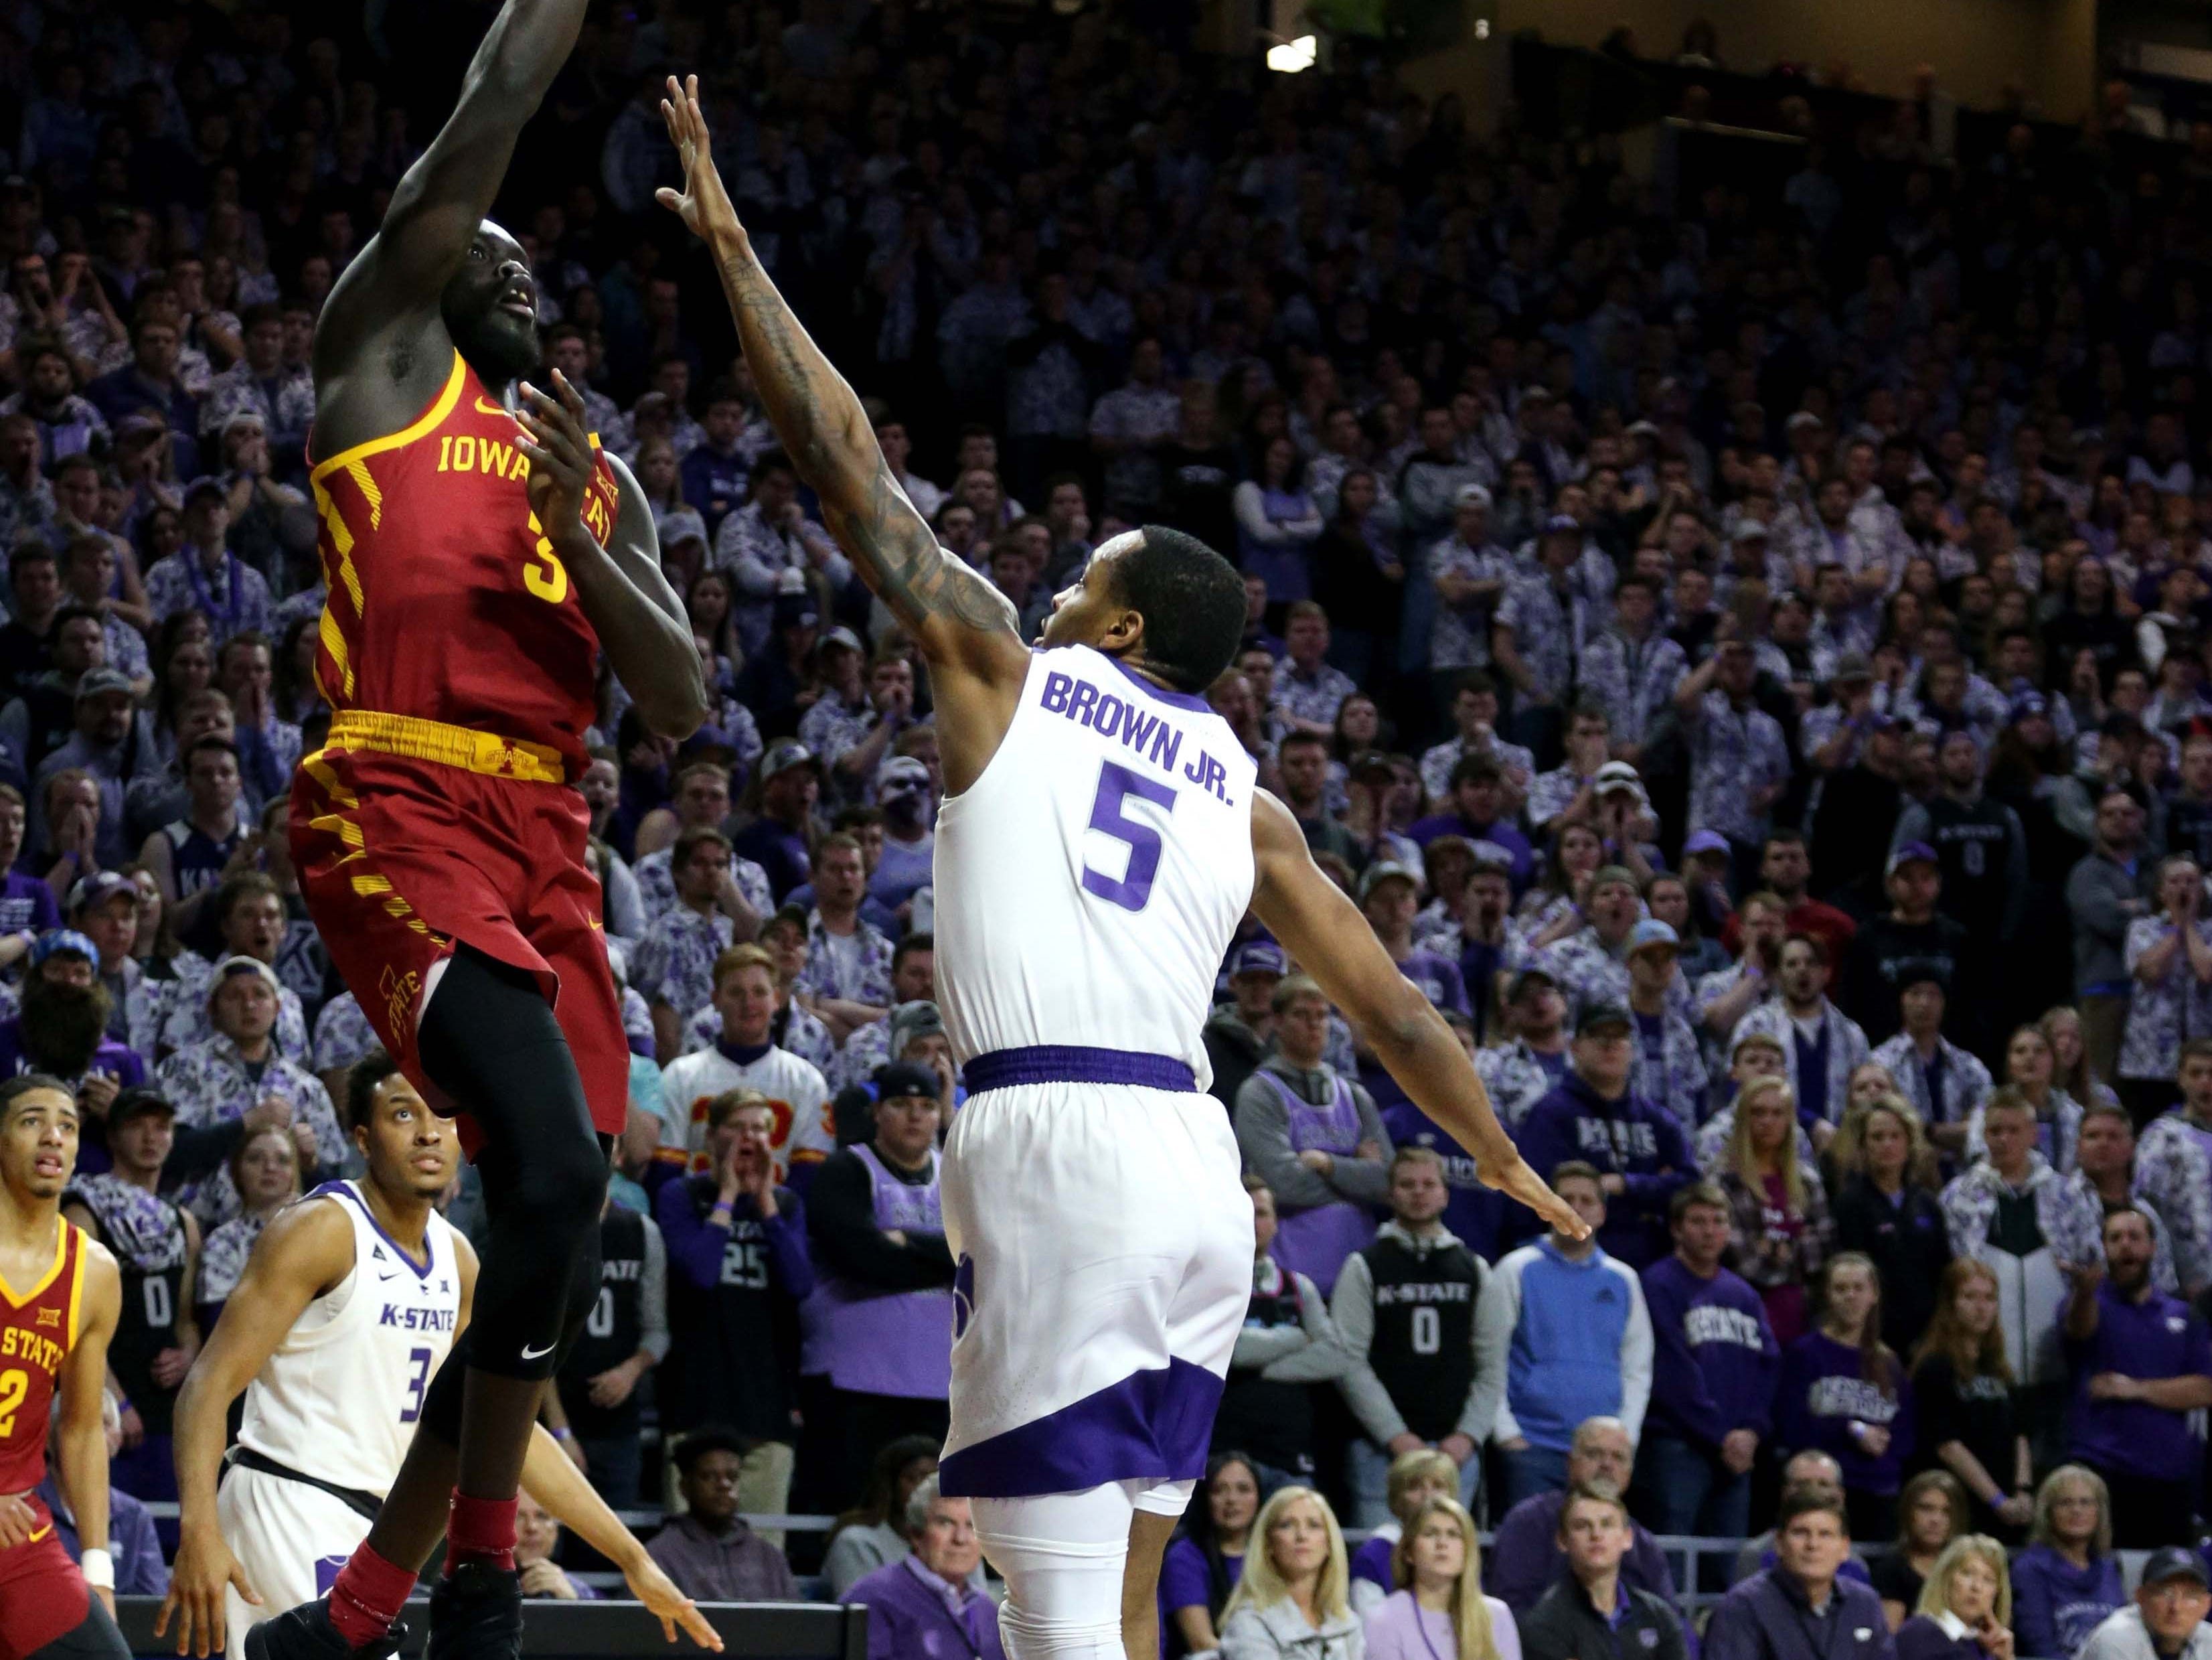 Feb 16, 2019; Manhattan, KS, USA; Iowa State Cyclones guard Marial Shayok (3) shoots over Kansas State Wildcats guard Barry Brown (5) during the first half at Bramlage Coliseum.